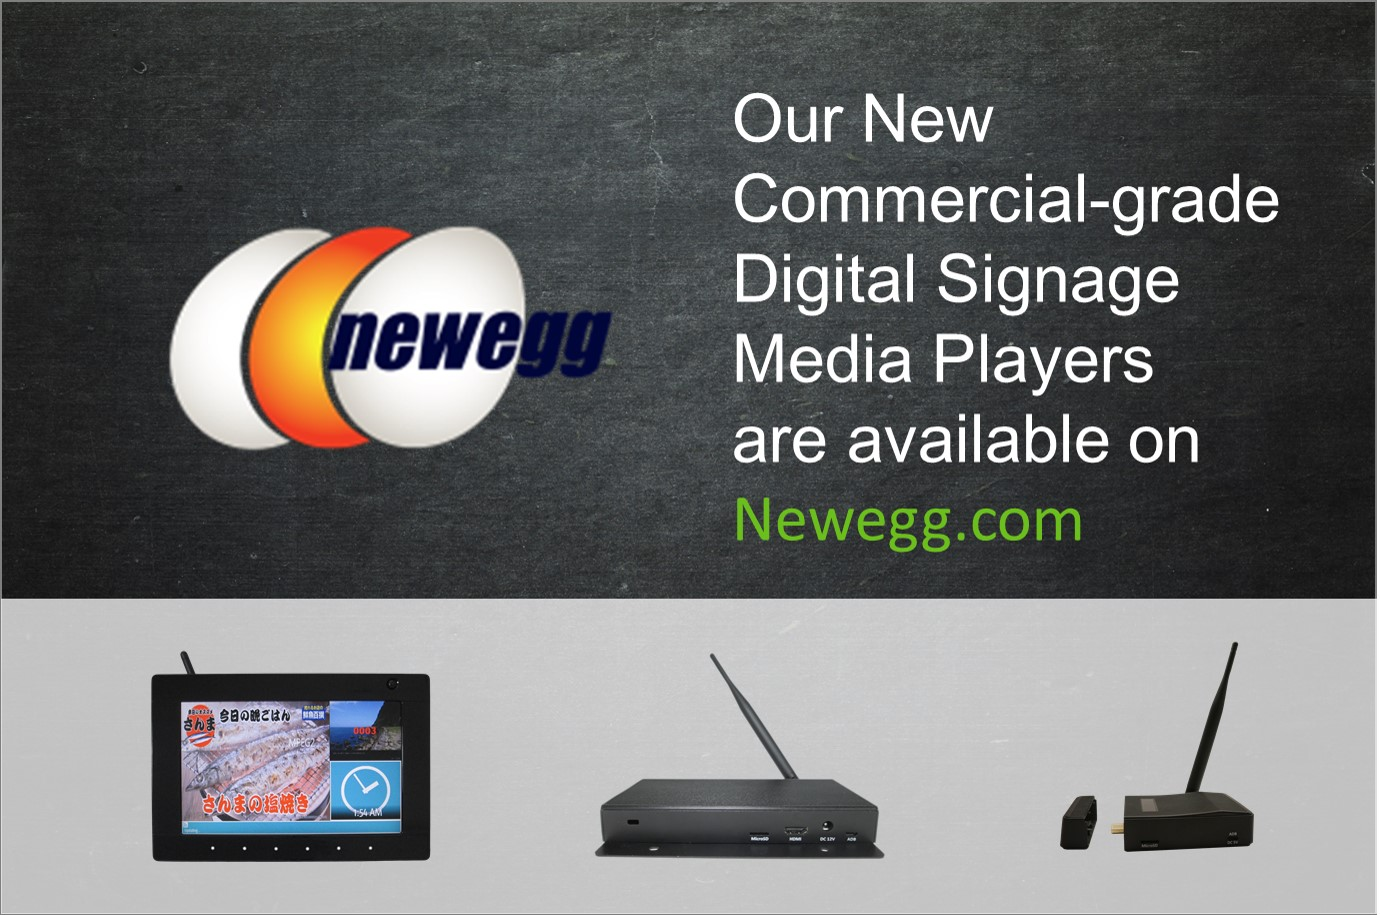 IAdea Offers Commercial-grade Digital Signage Media Players on Newegg